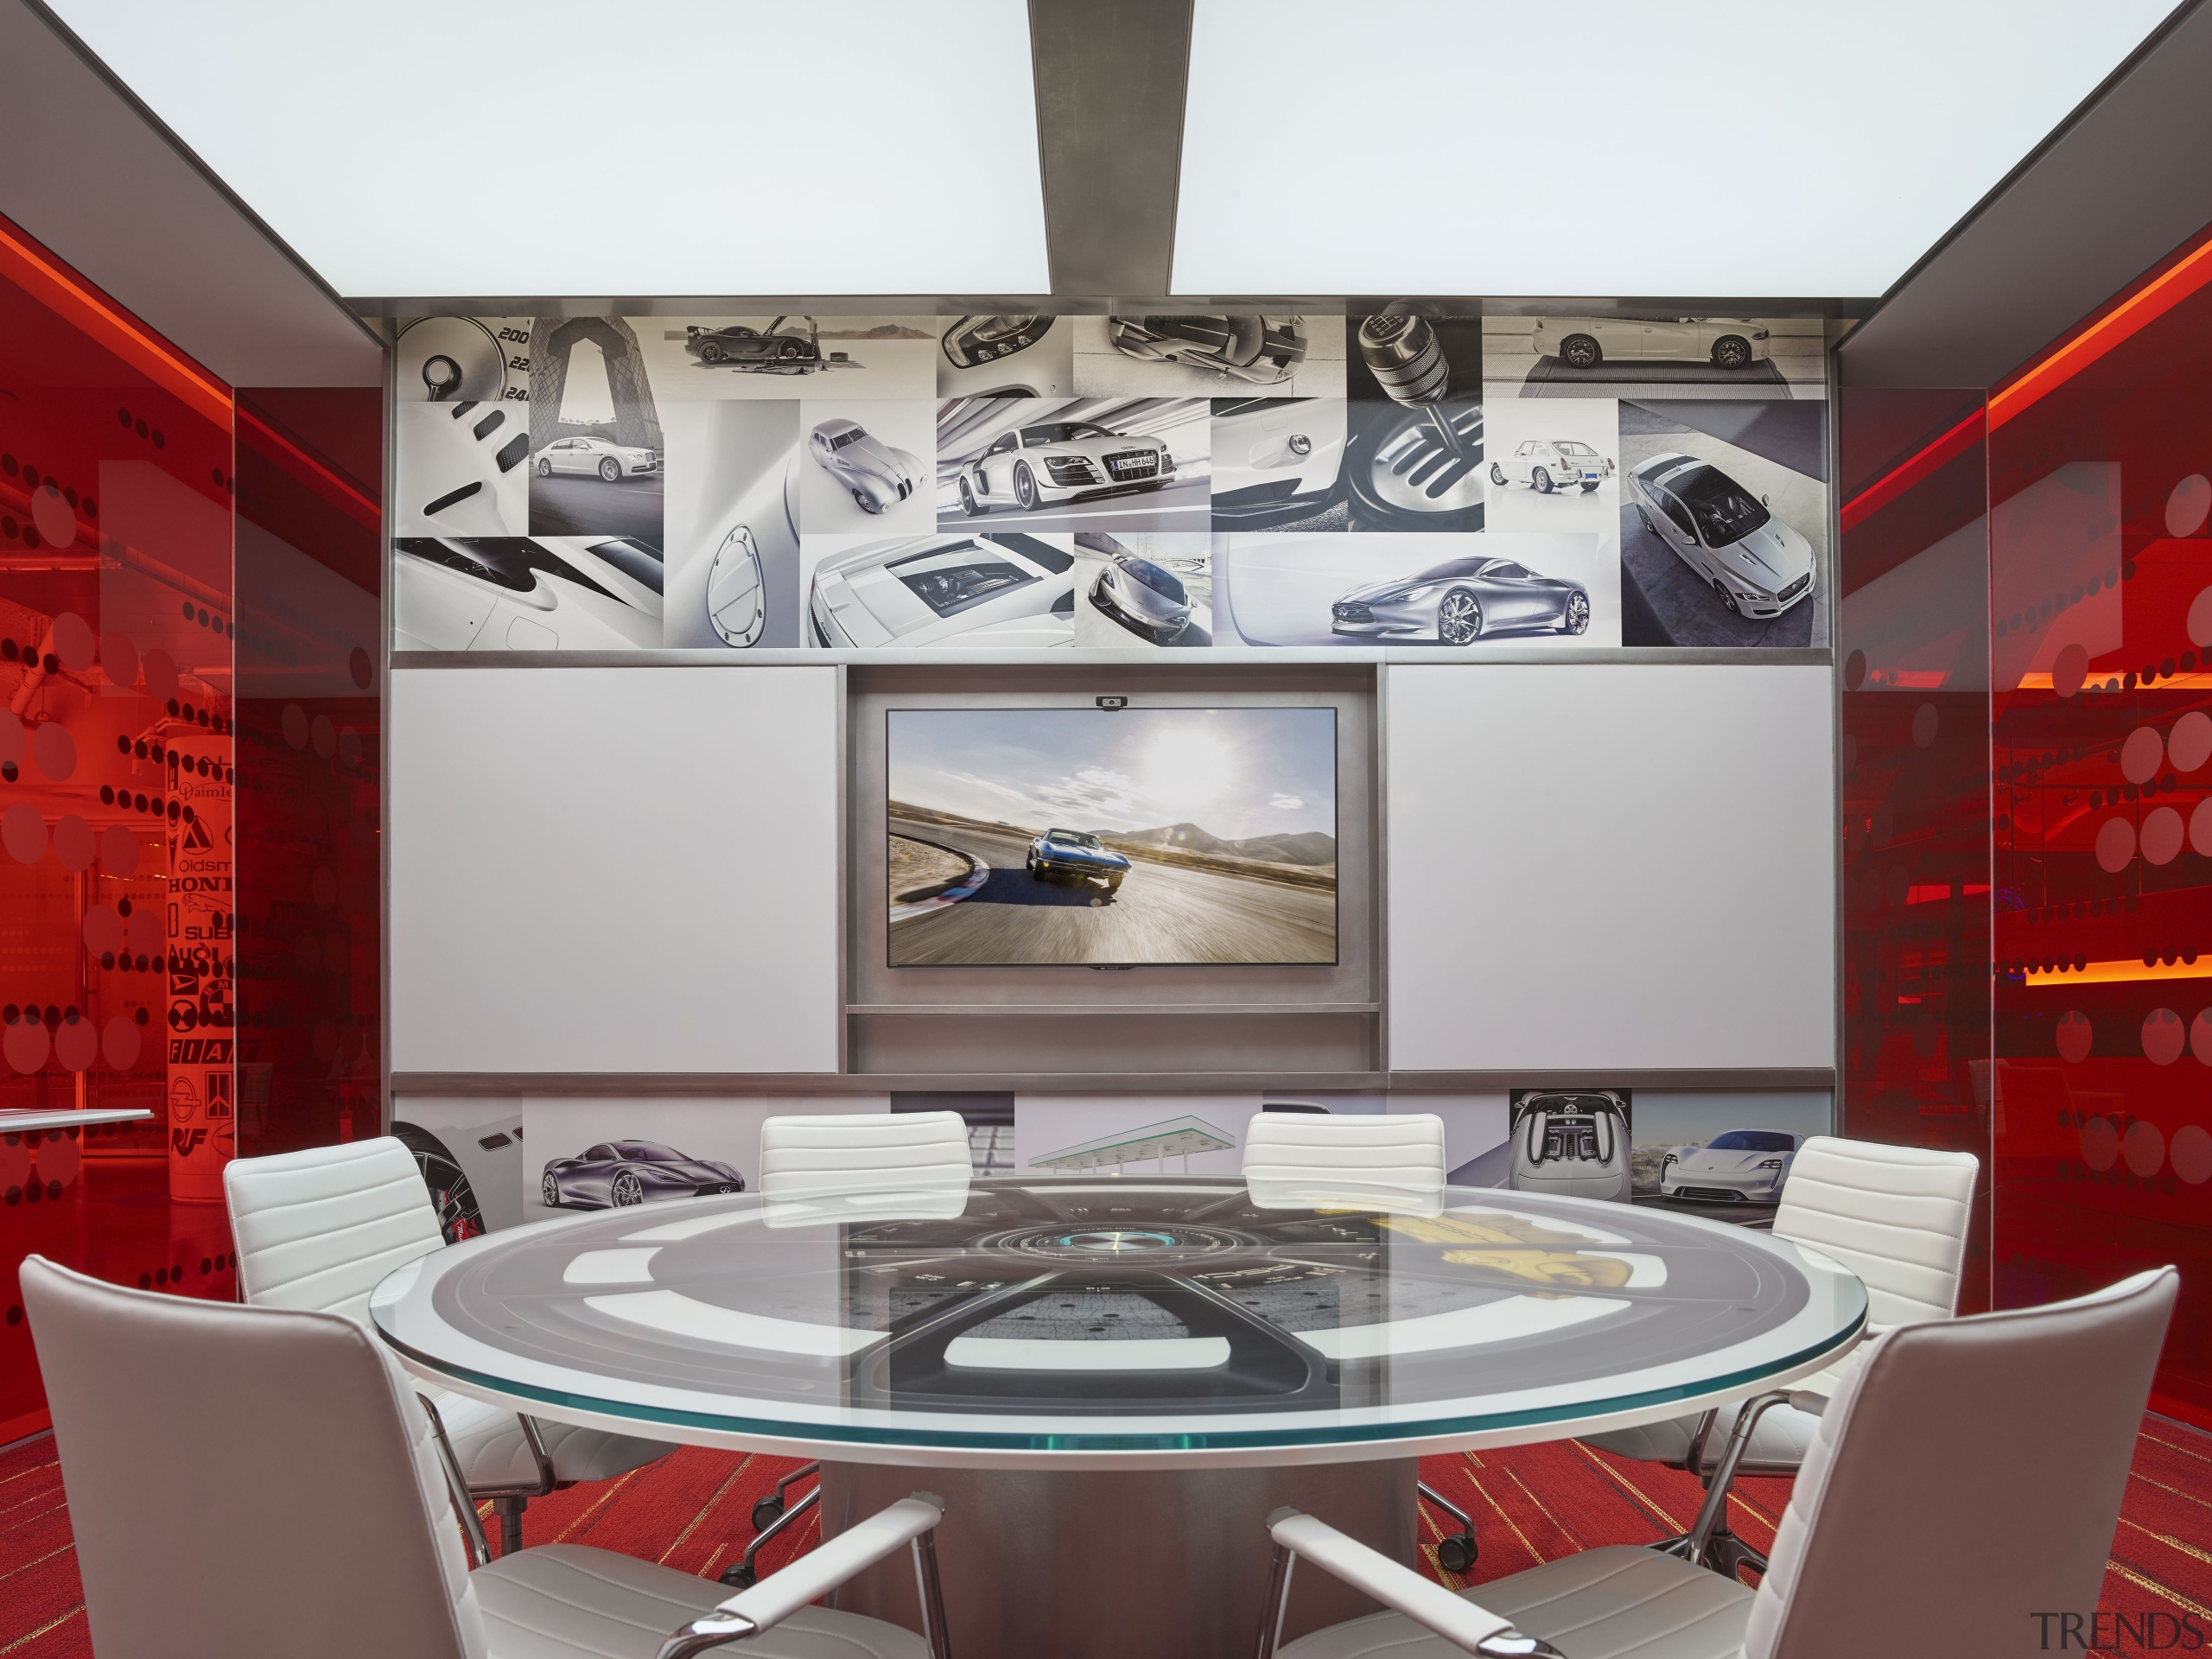 Flanking reception at Edmunds.com headquarters are four meeting ceiling, interior design, table, wall, gray, red